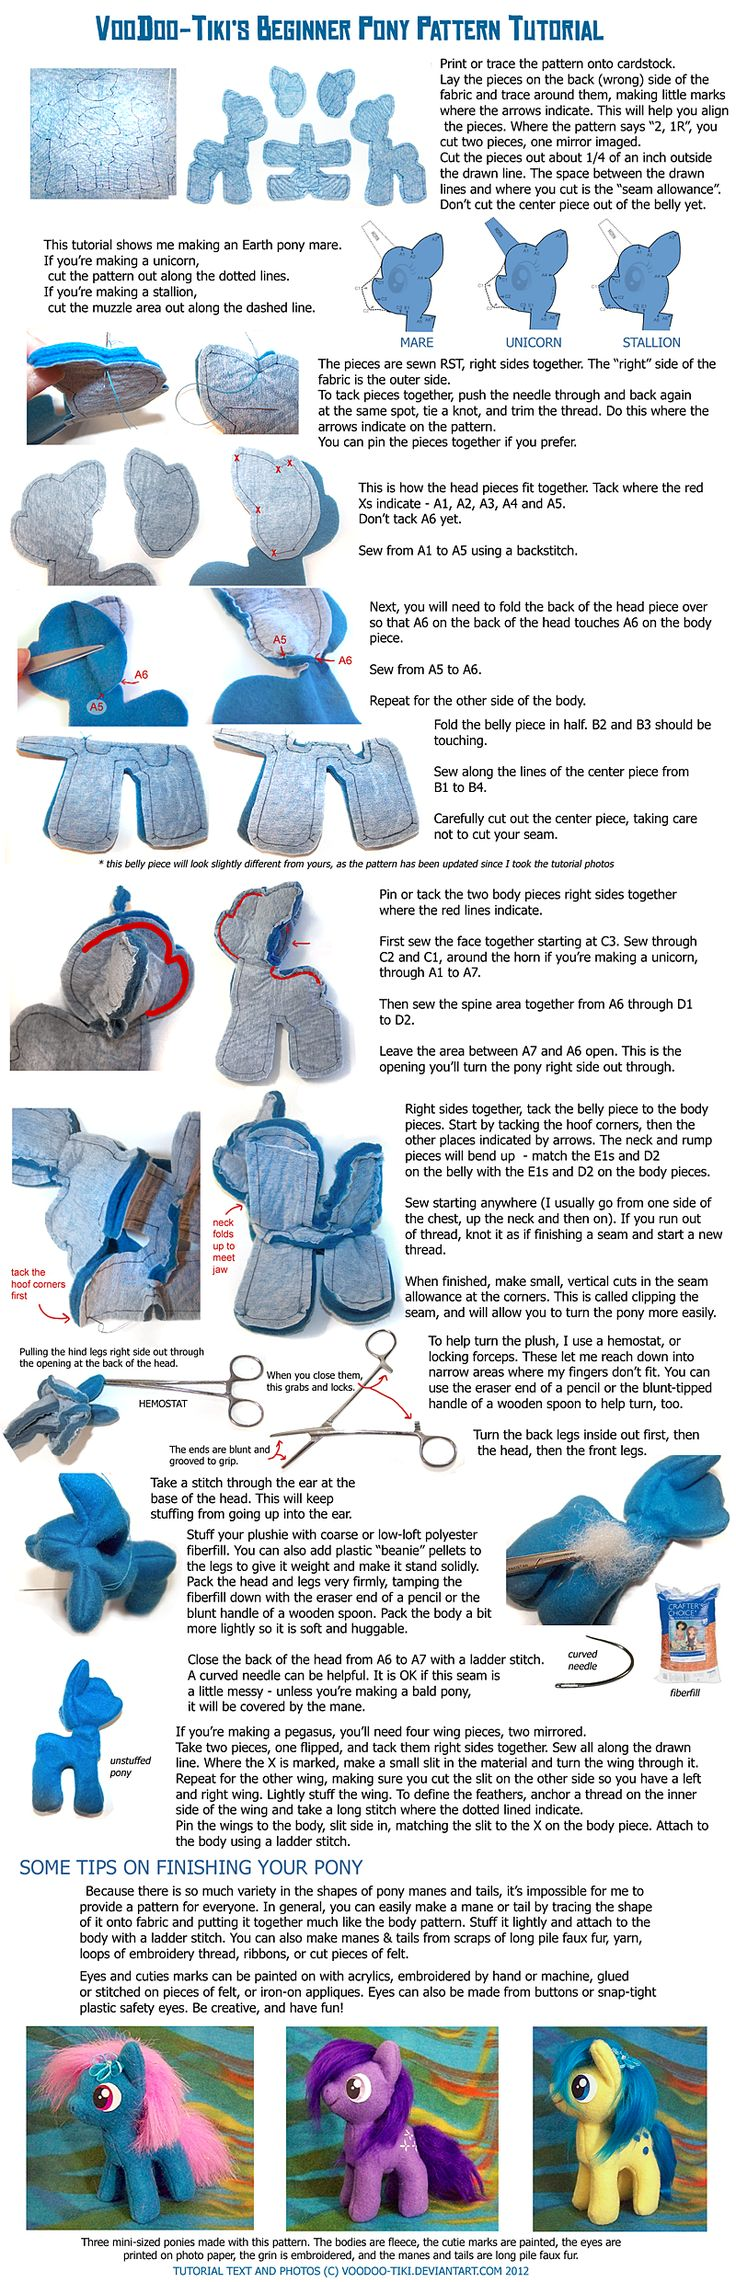 Beginner Pony Plushie Tutorial by *Voodoo-Tiki on deviantART